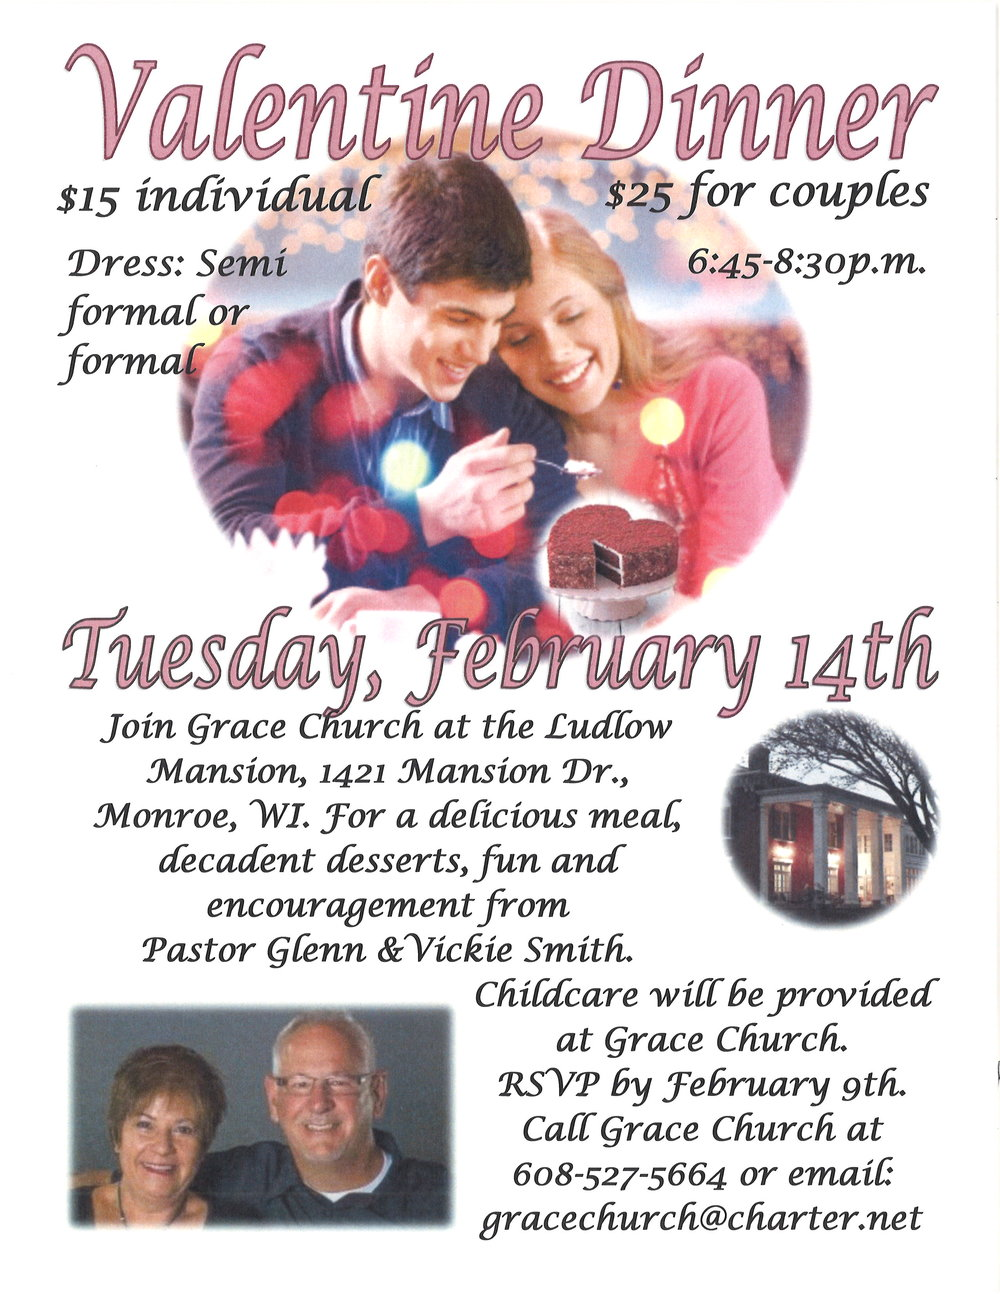 Checks can be made to Grace Church and sent to P.O. Box 430, New Glarus WI 53574 or pay that night at the door.